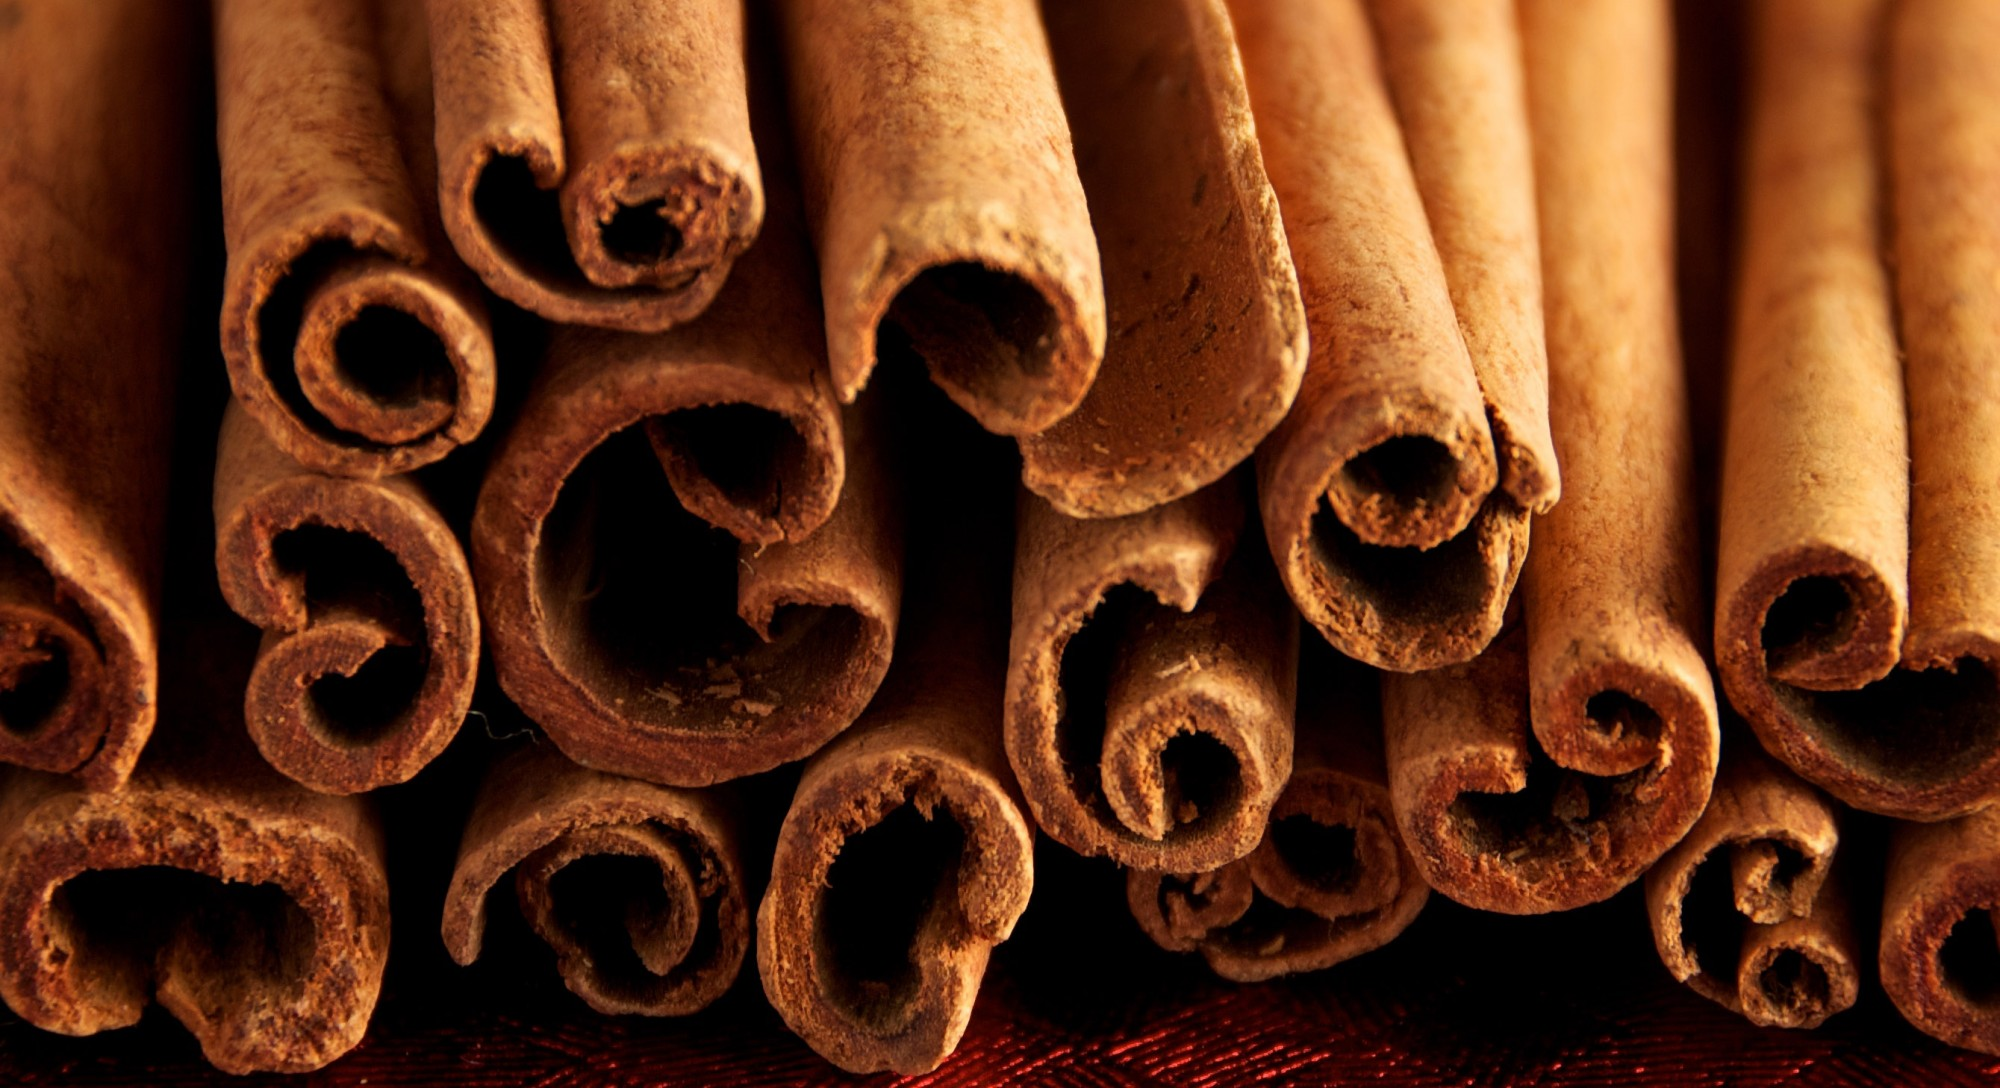 Tip of the Week: Who Needs Air Freshener When You Have Cinnamon?